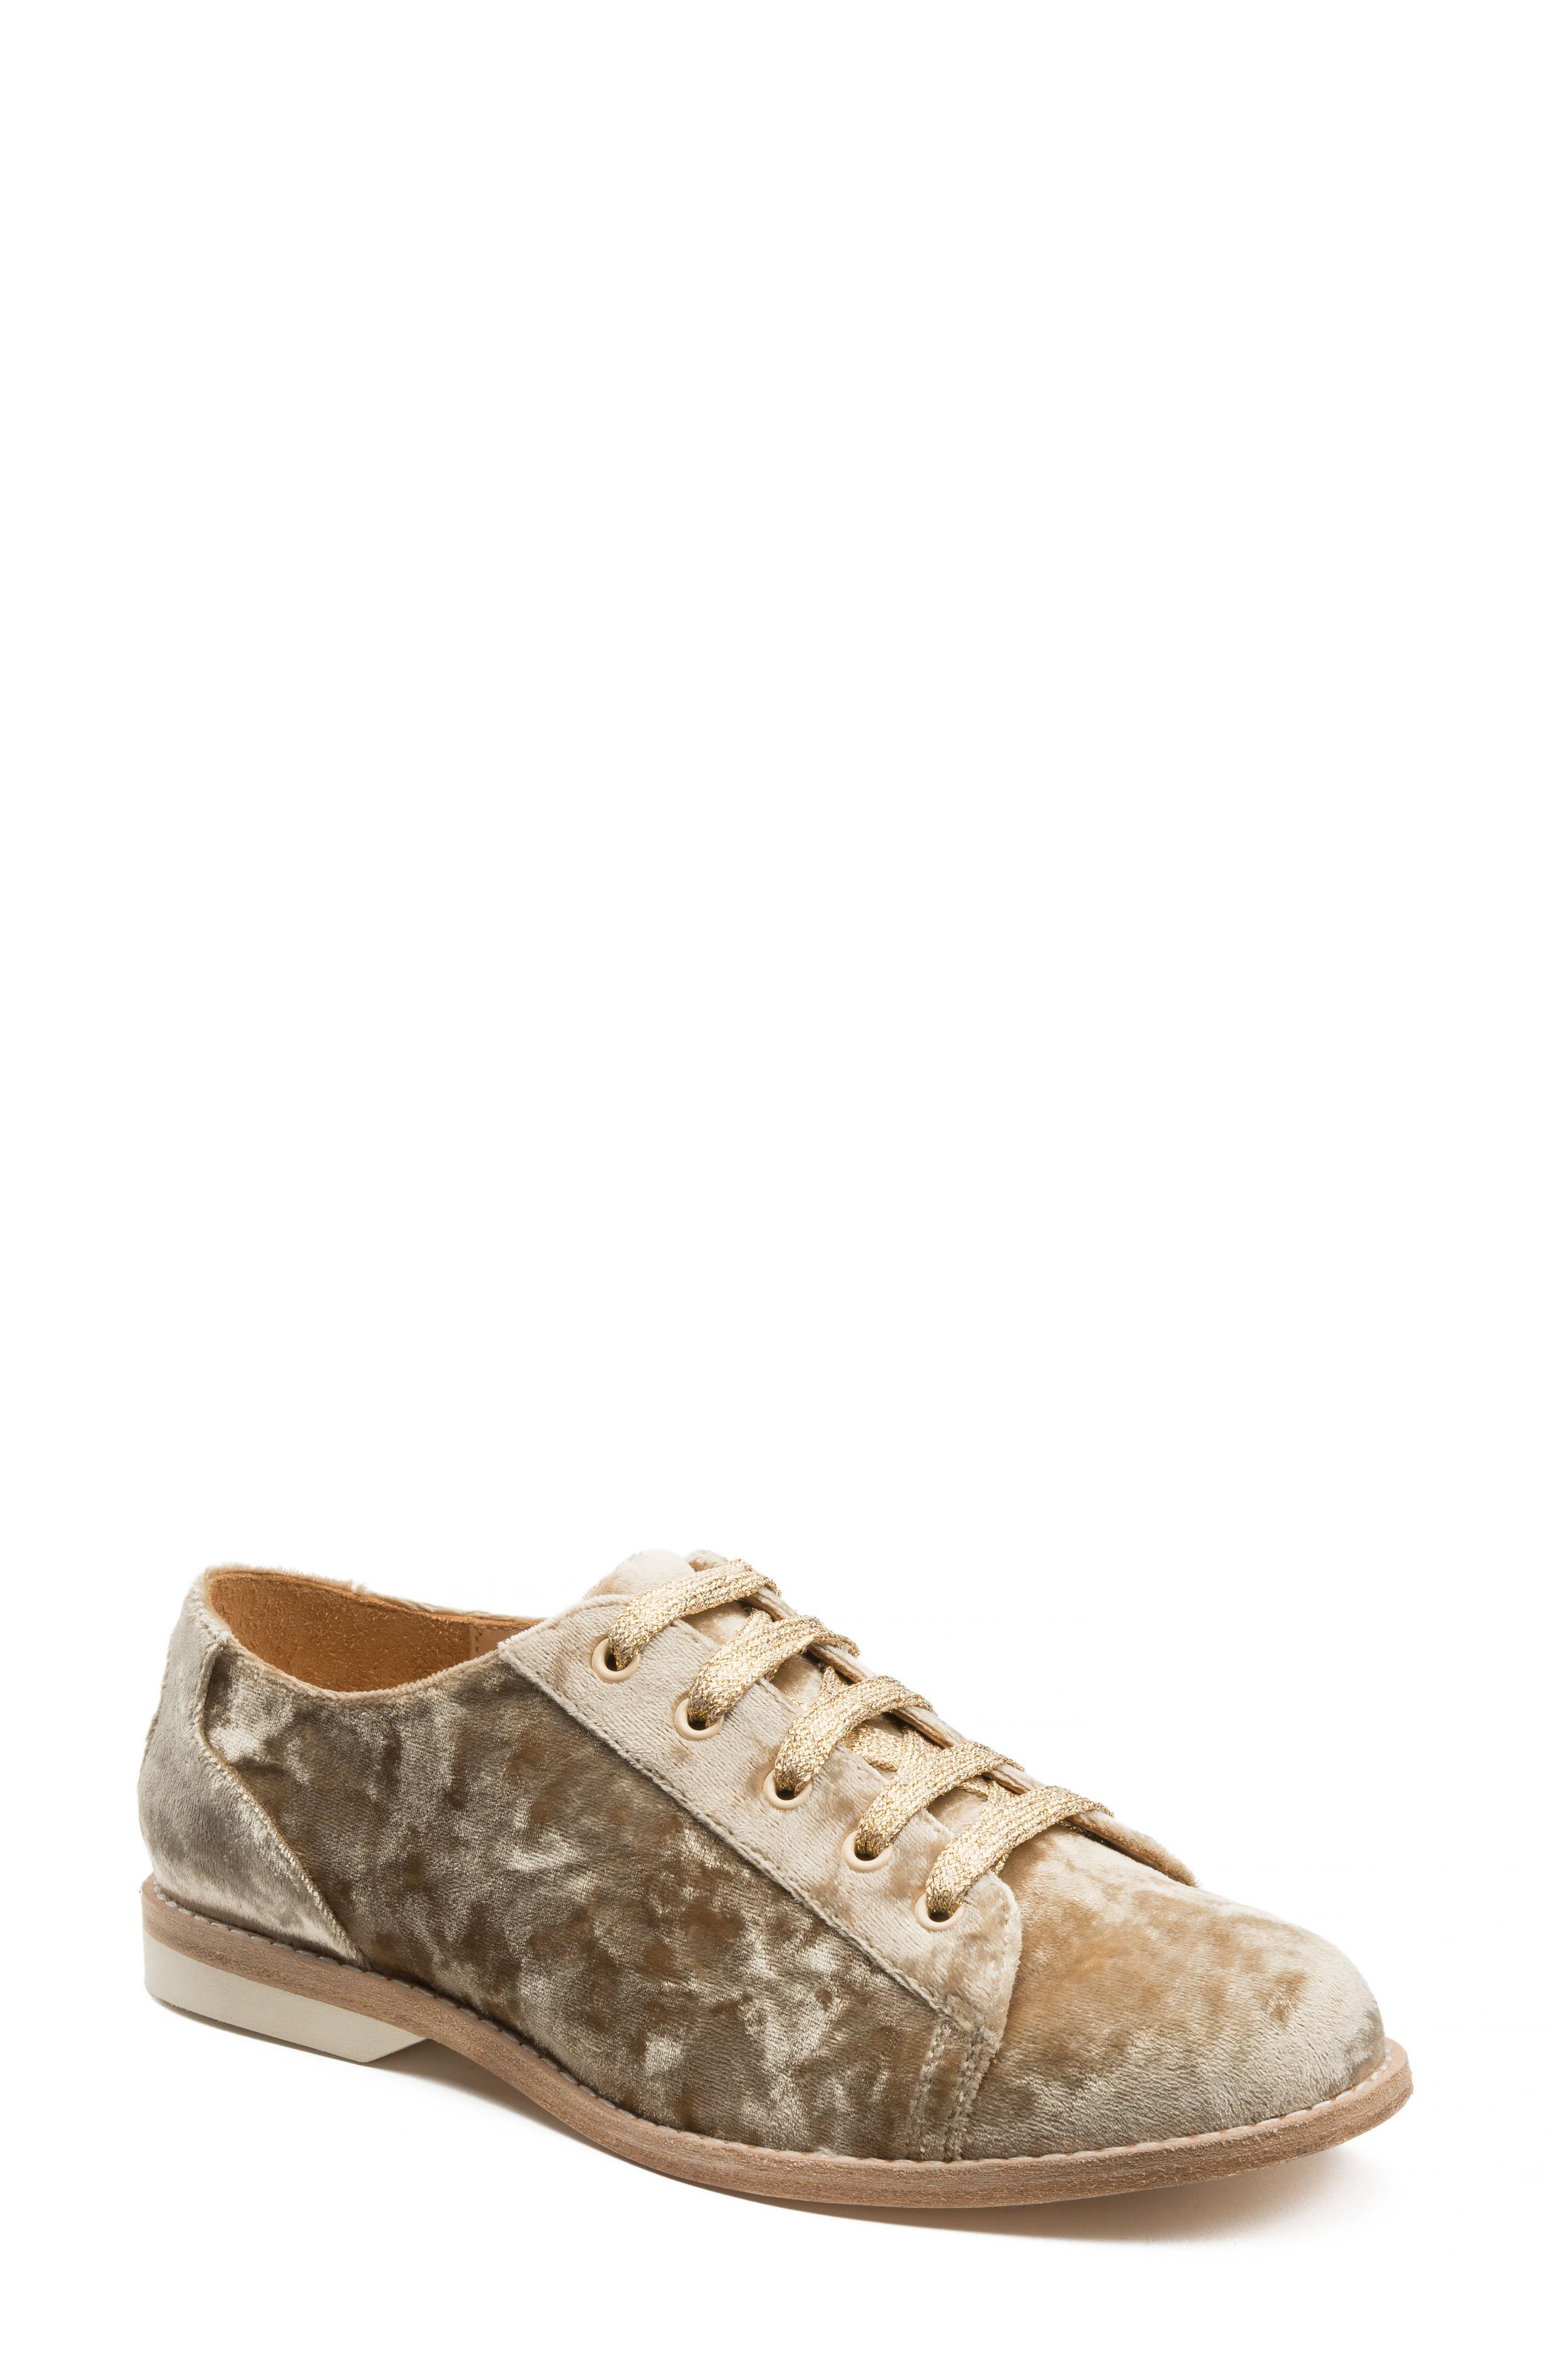 Alternate Image 1 Selected - Bill Blass Lace-Up Oxford (Women)